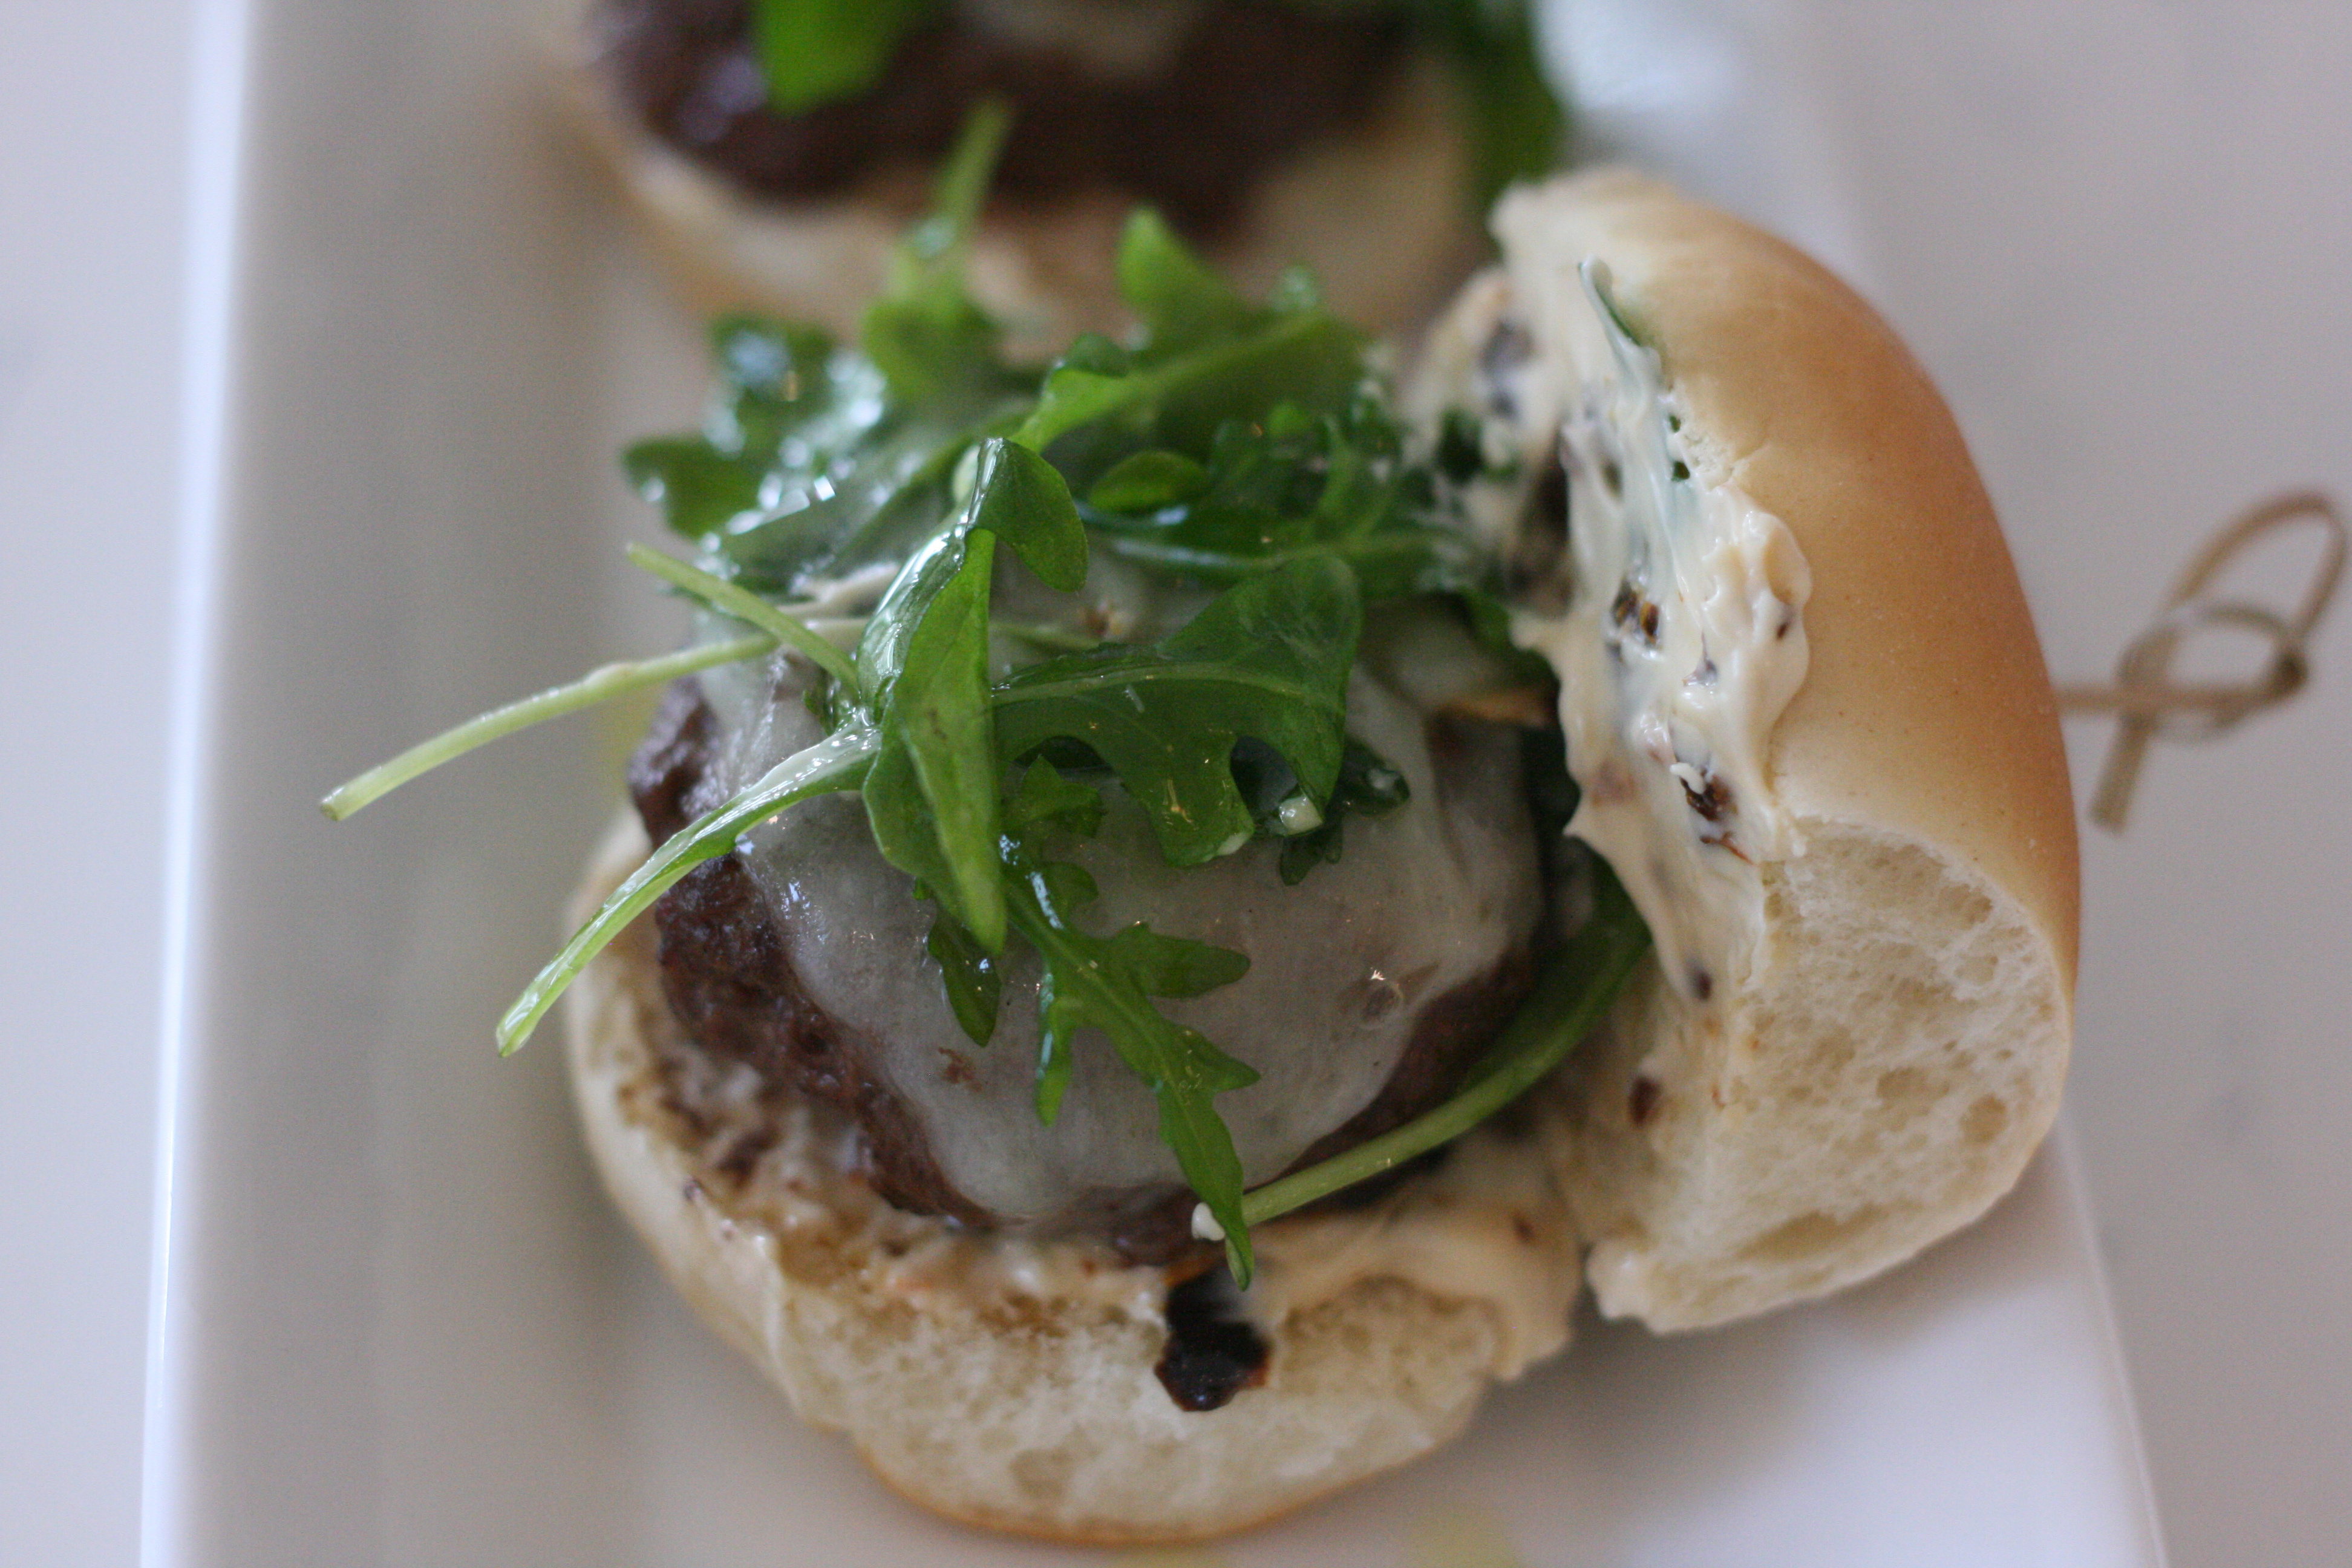 Summertime Sliders with Sundried Tomato Mayo and Lightly-dressed Arugula